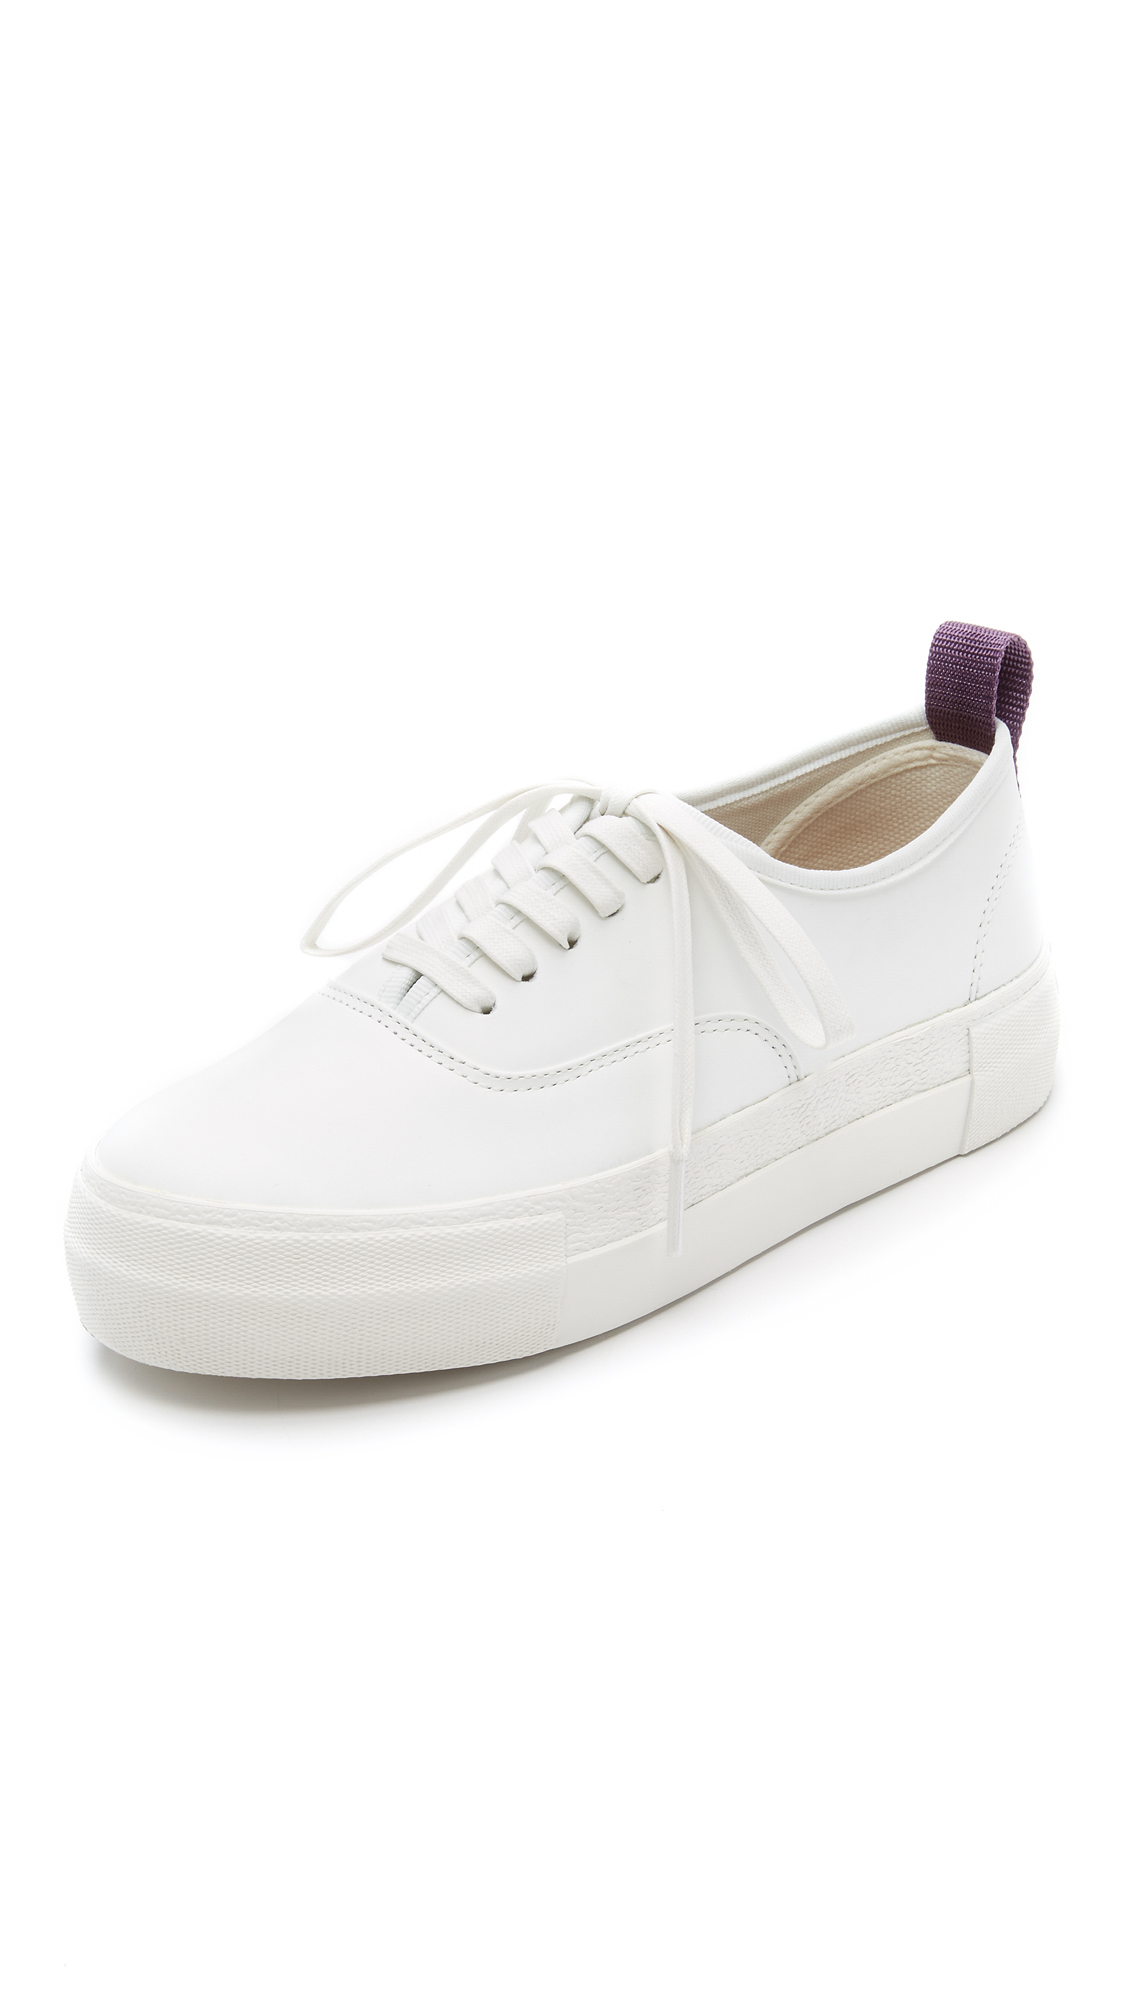 Eytys Mother Leather Sneakers - White